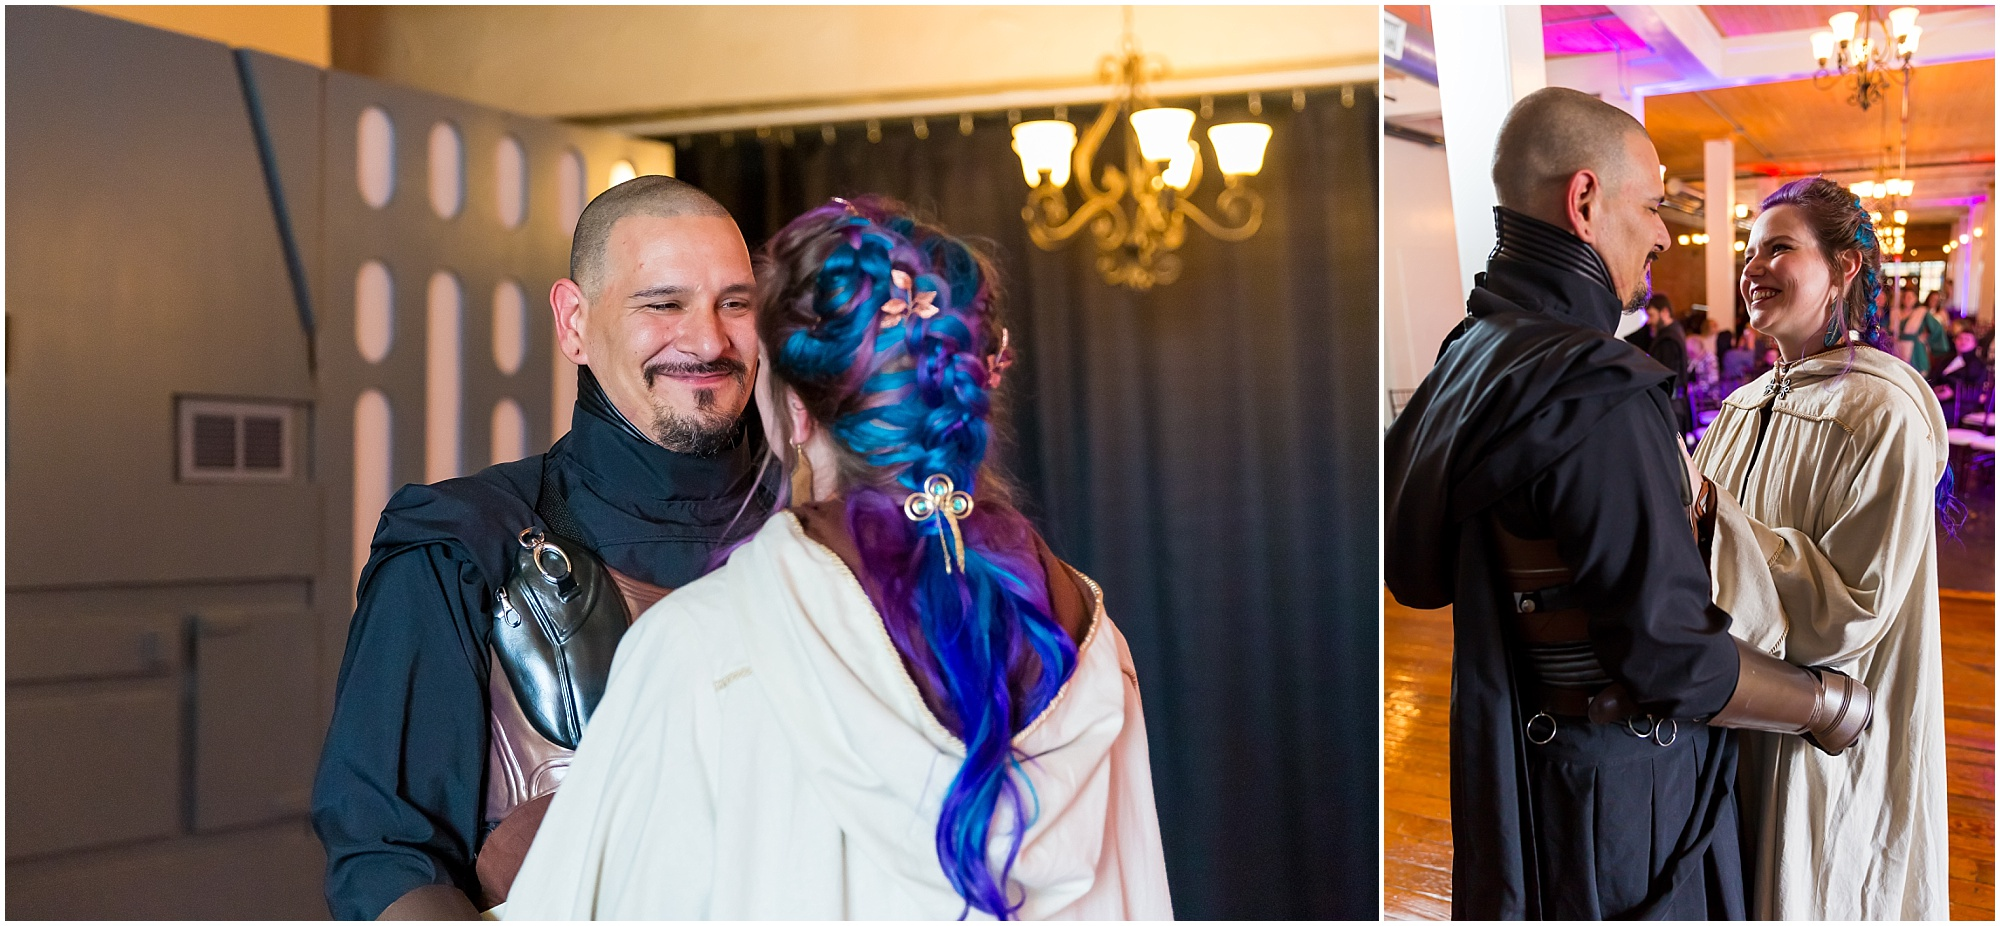 A bride and groom, dressed as Star Wars characters, see each other for the first time before their ceremony - Star Wars Wedding in downtown Waco, Texas - Jason & Melaina Photography